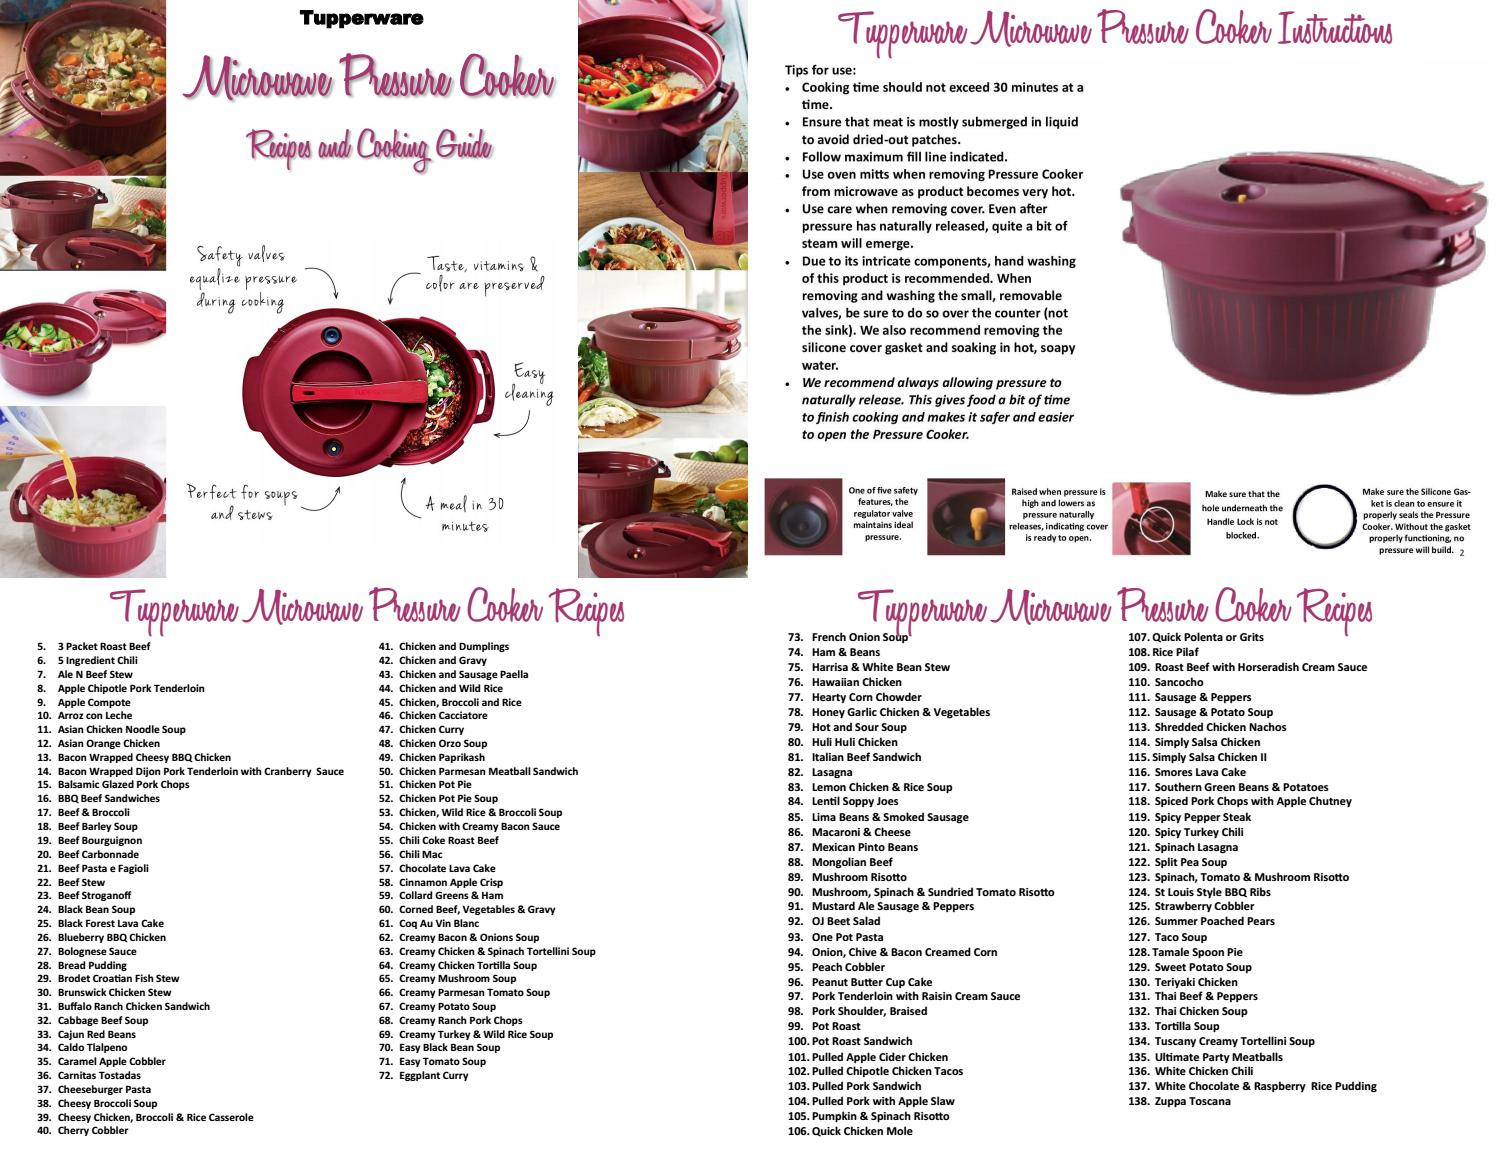 Tupperware Pressure cooker recipes and cooking guide 9 by TW